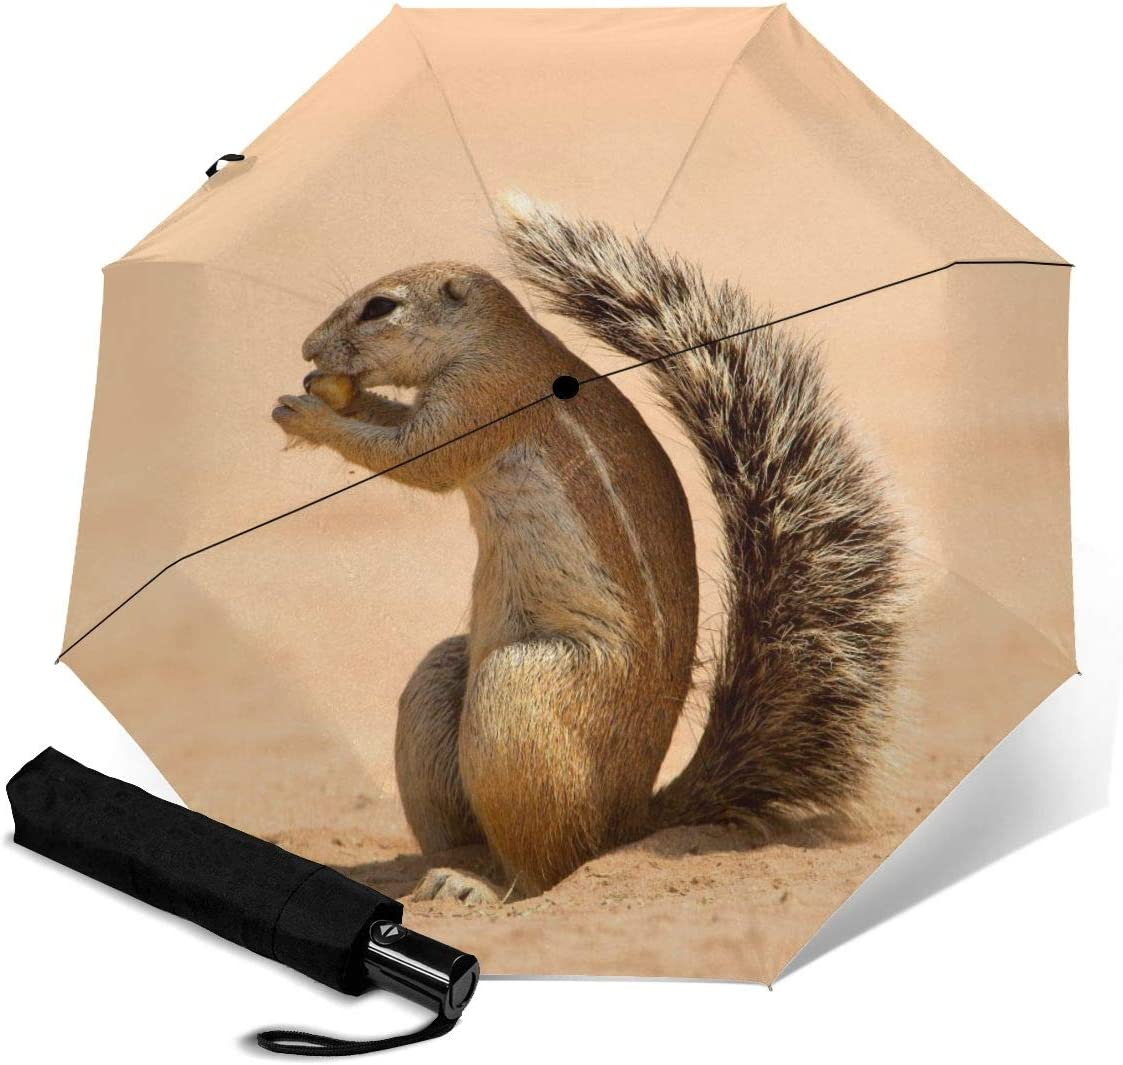 Ground Squirrel Automatic Open Folding Compact Travel Umbrellas For Women